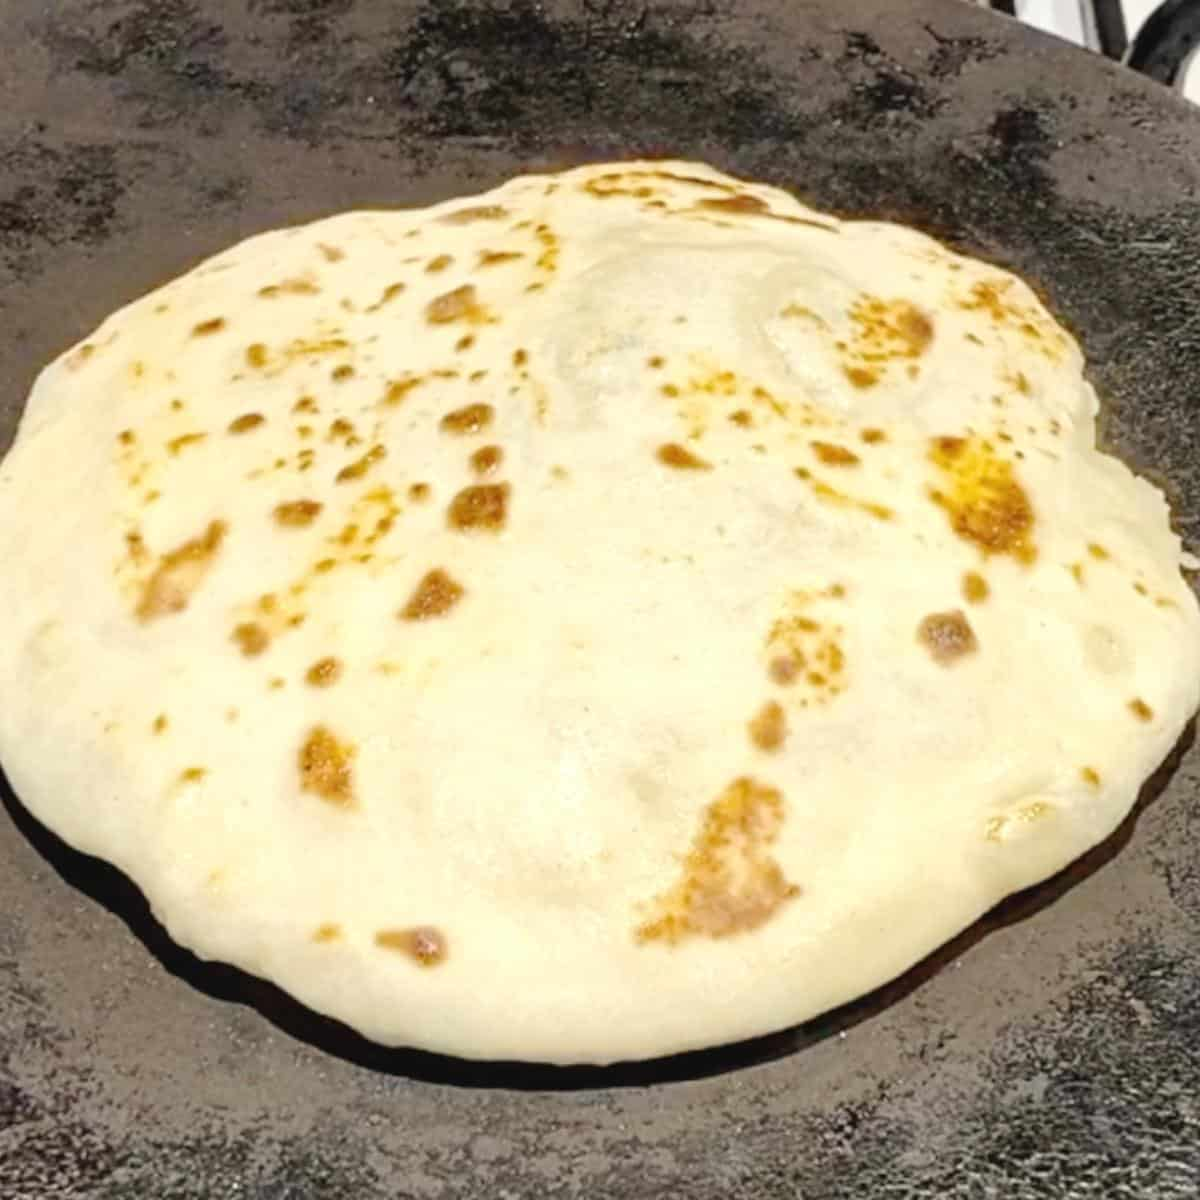 A skillet cooking flatbread filling with mashed potato.